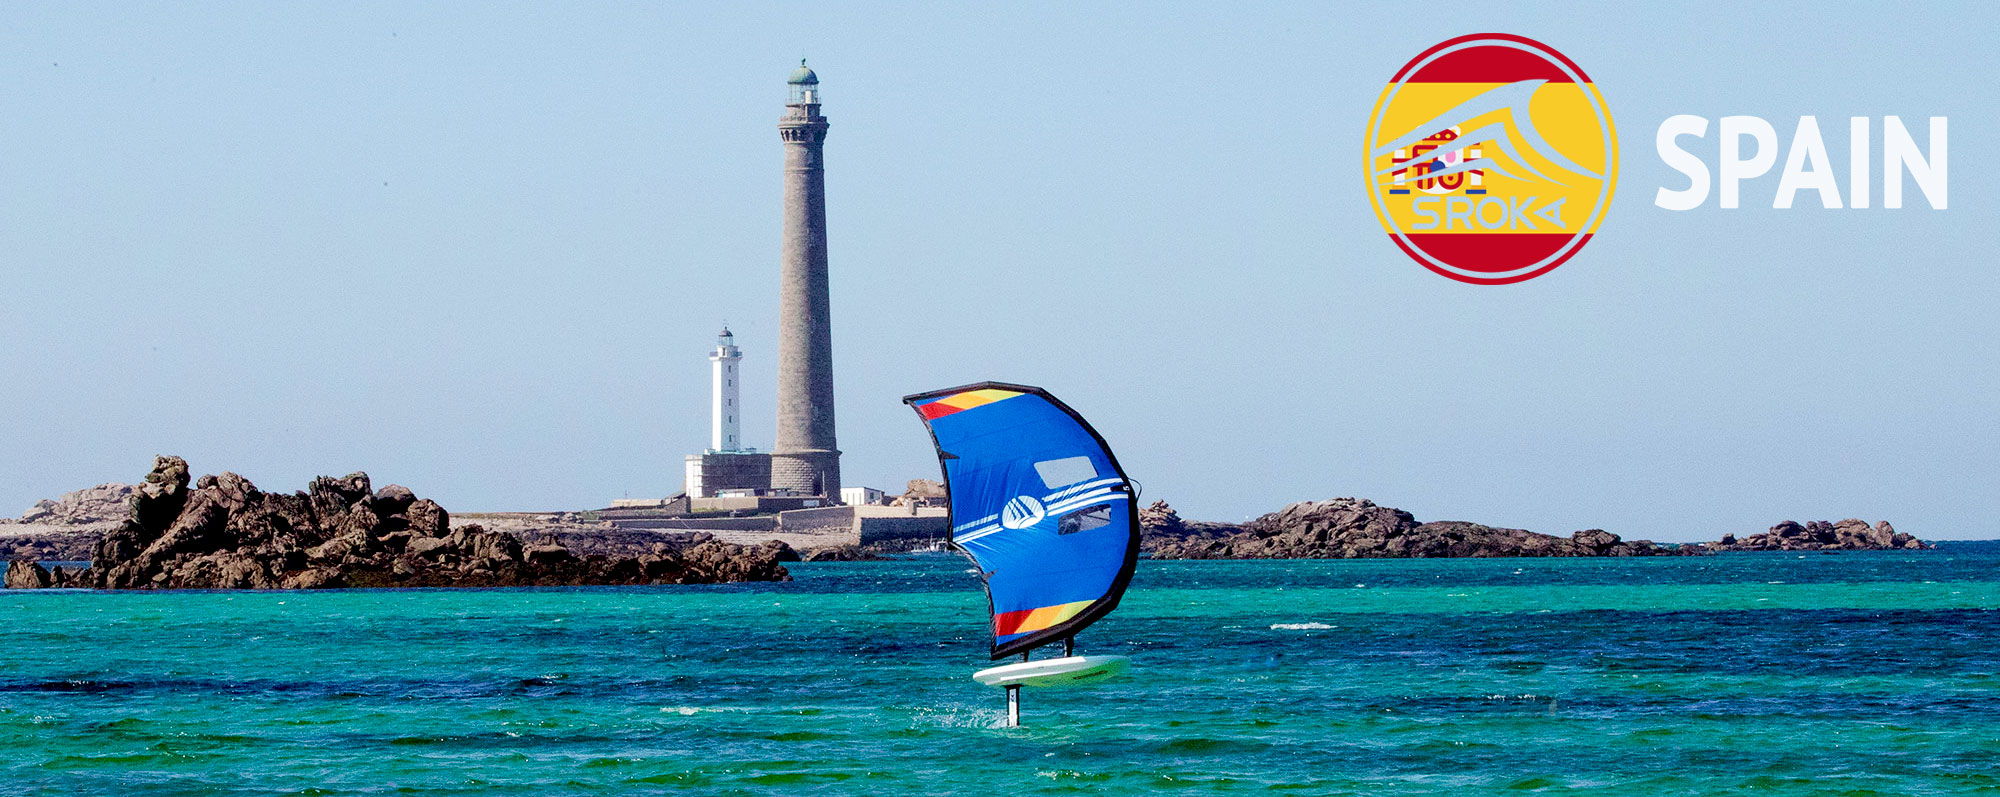 Buy a wing foil in Spain, surf foil, SUP foil, kite foil, wind foil or a stand-up paddle.